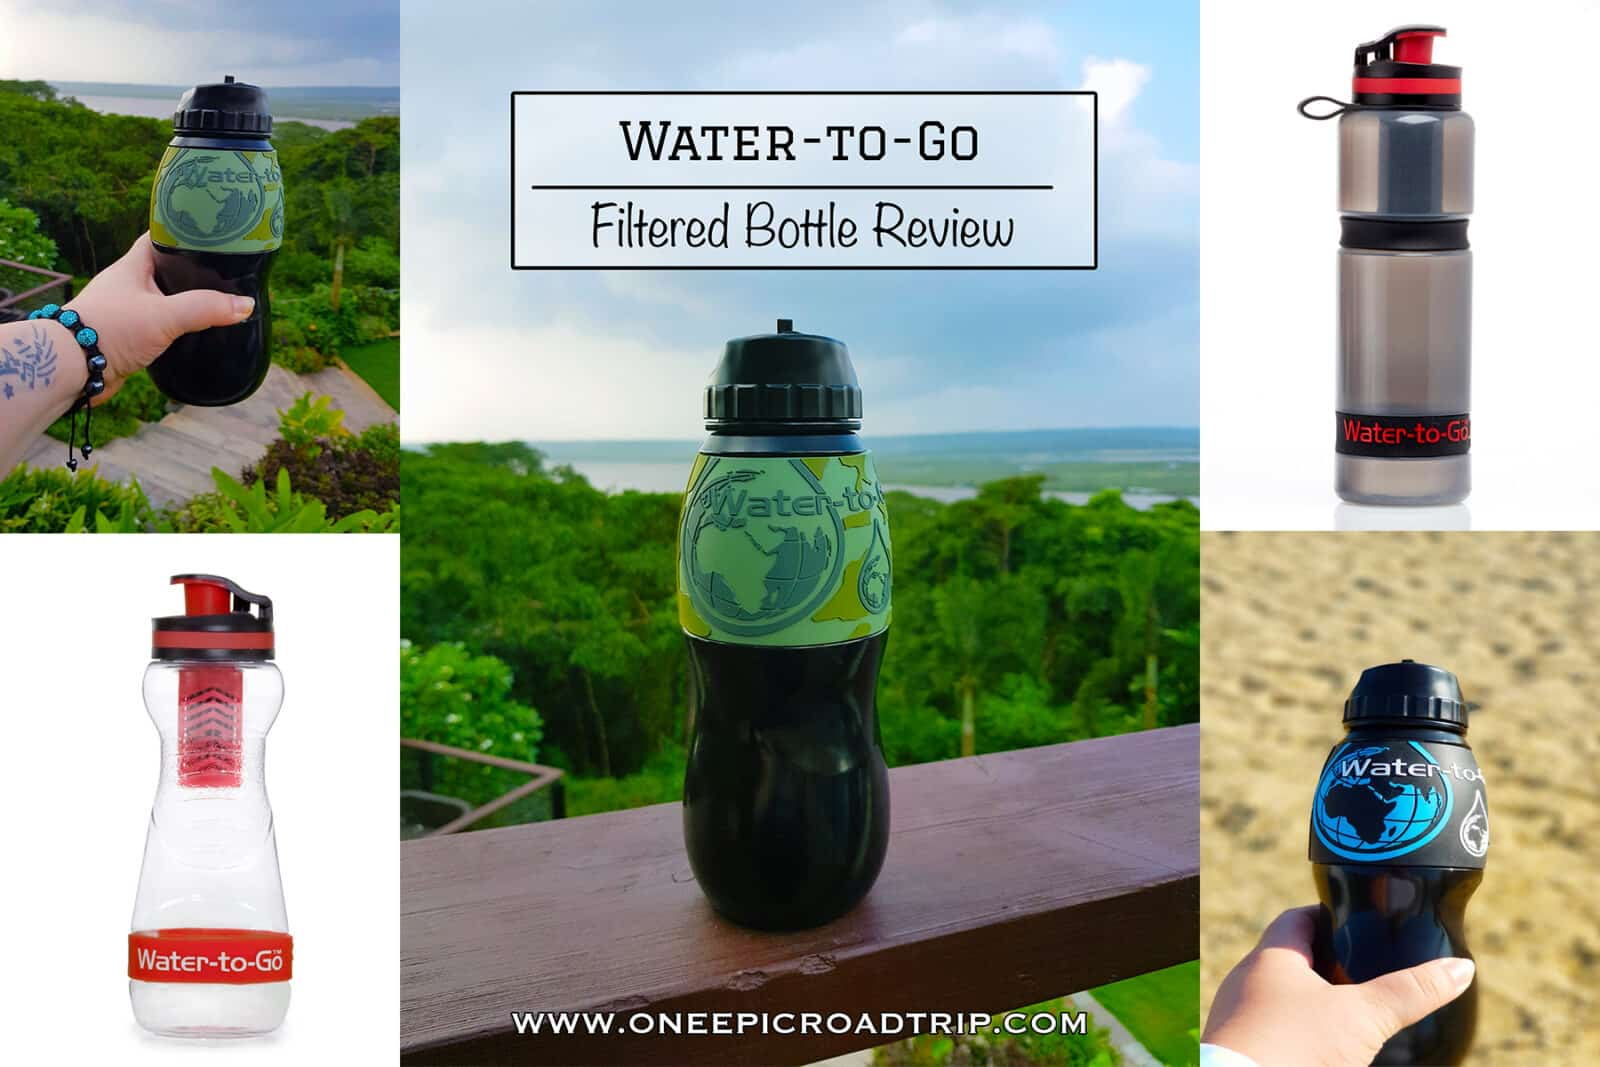 water to go filtered bottle - one epic road trip p3